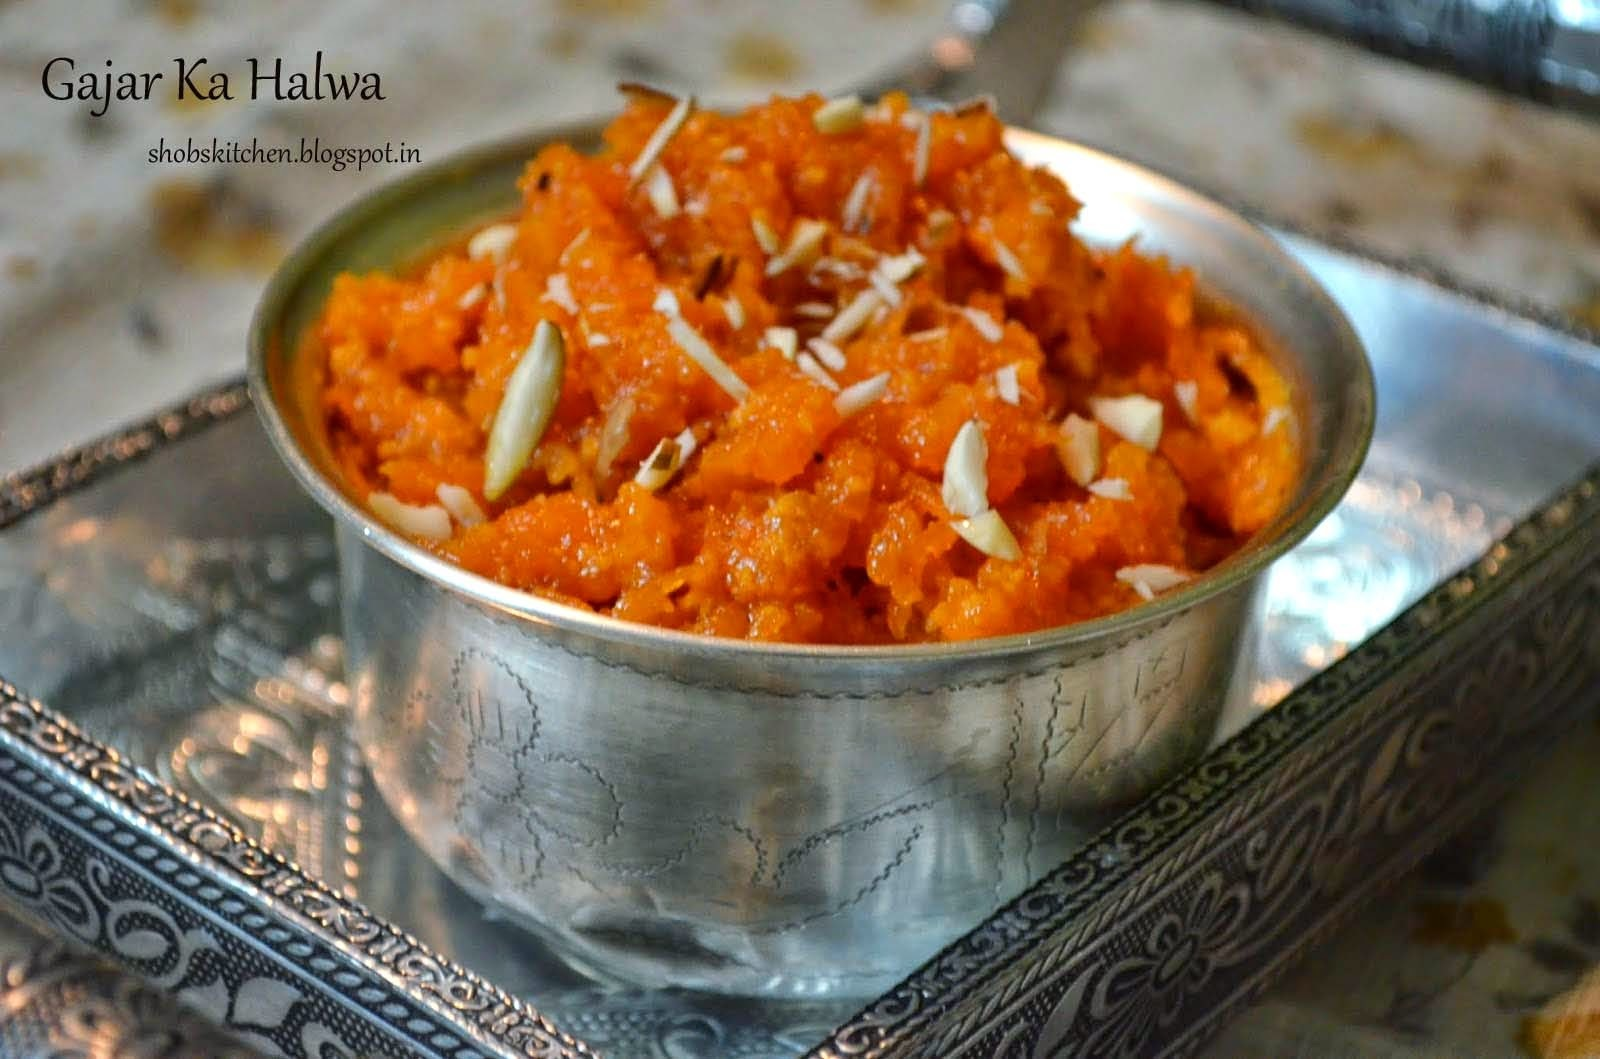 Launching My FB Page & My Favourite Gajar Ka Halwa!